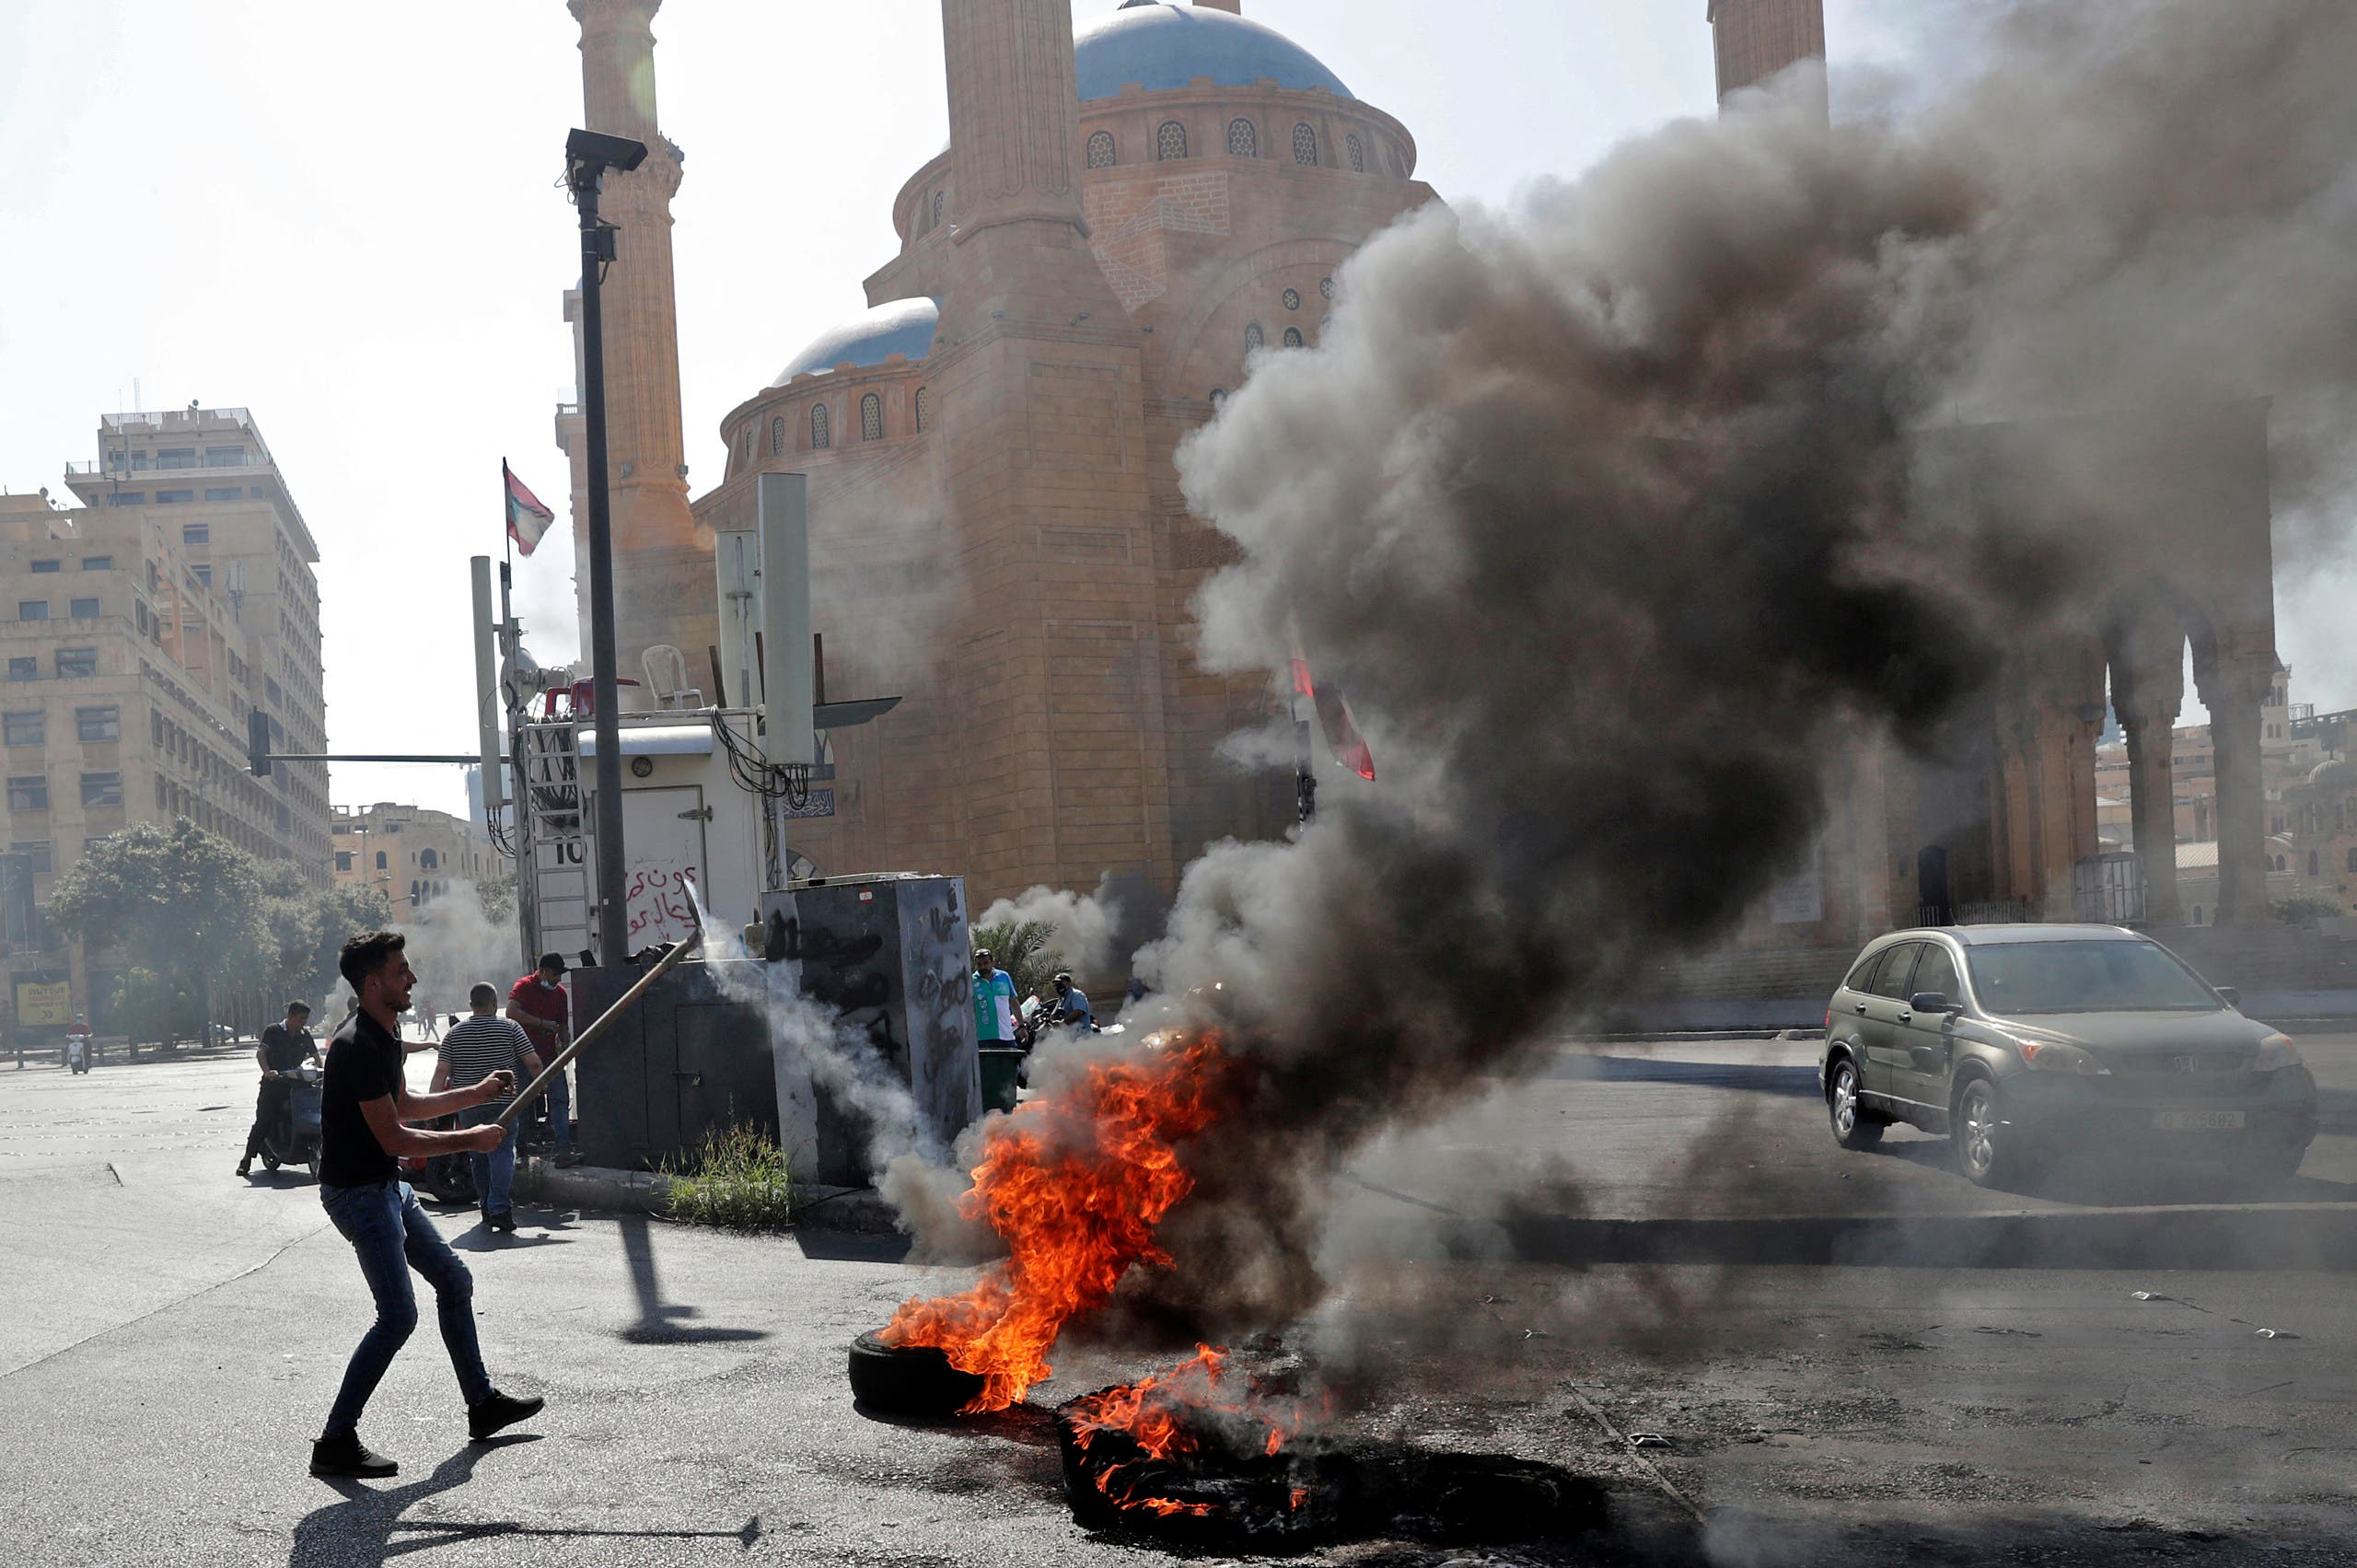 Demonstrators burn tires to block the Martyrs' Square in the centre of Lebanon's capital Beirut on June 26, 2021, as they protest against dire living conditions amidst the ongoing economical and political crisis. (AFP)